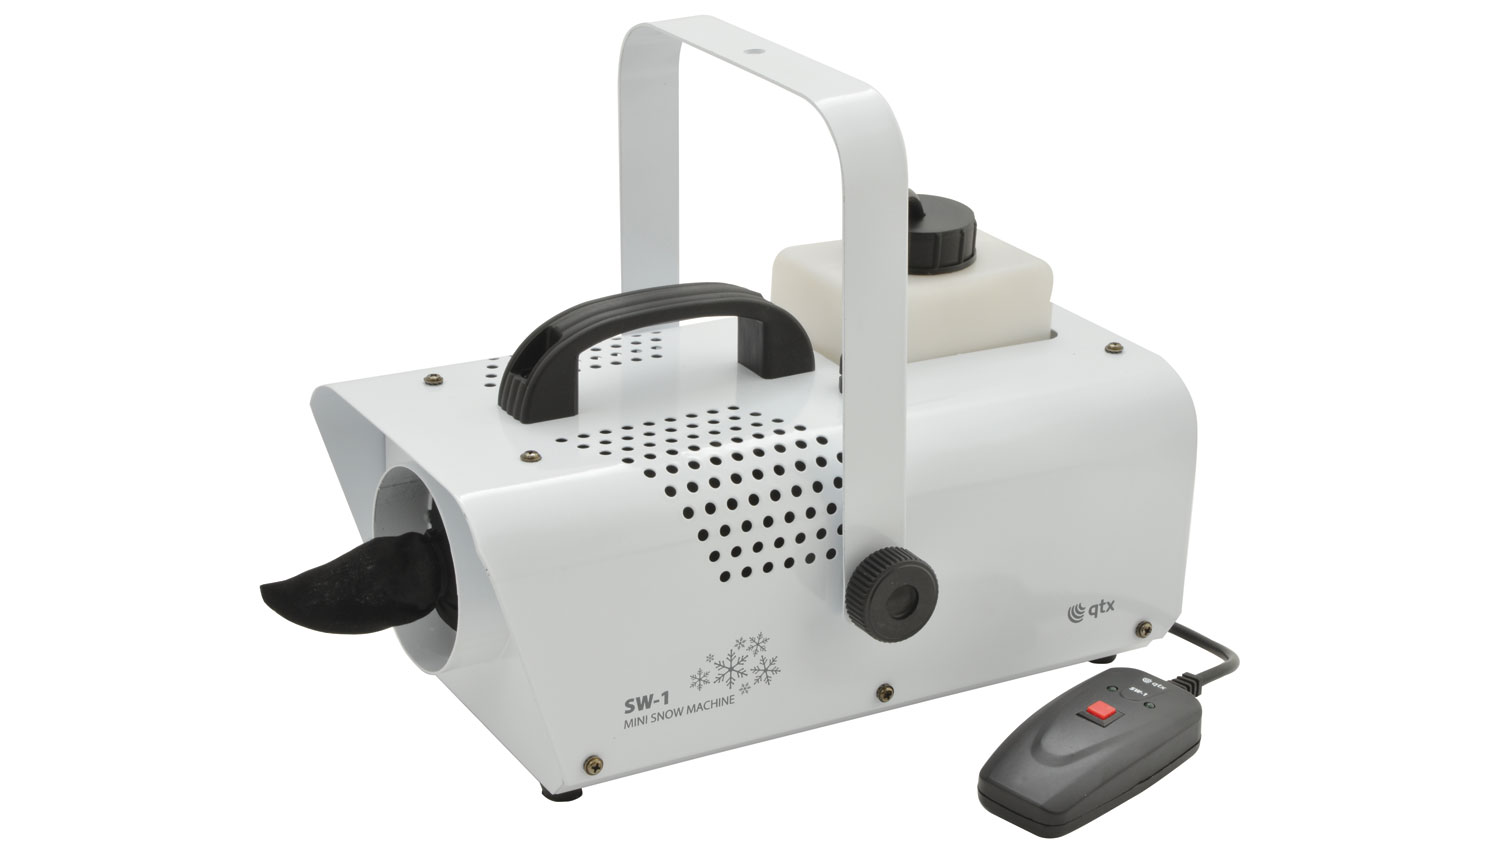 Qtx SW-1 Mini snow machine